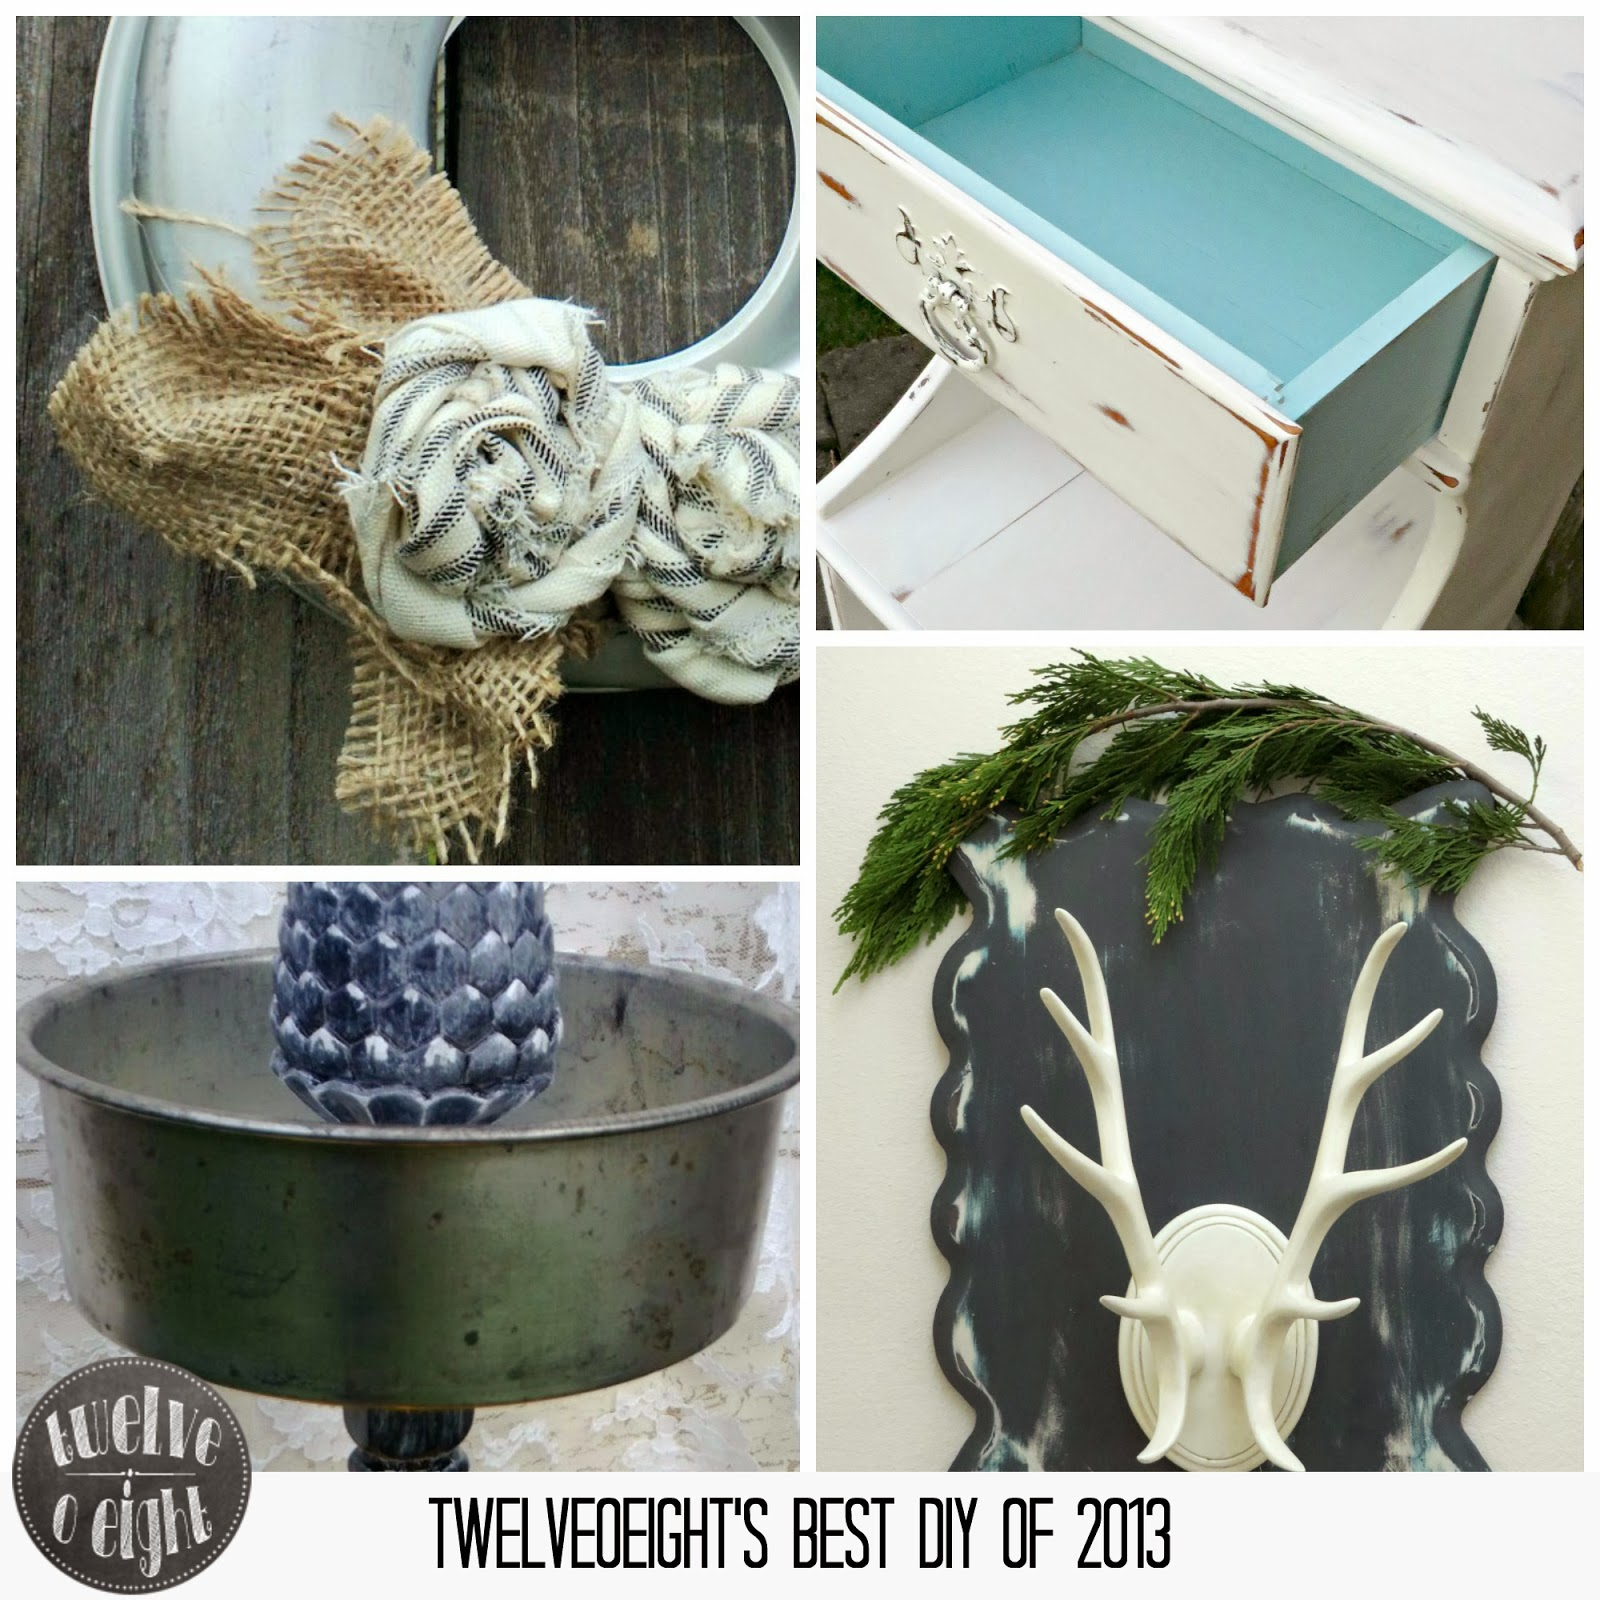 twelveOeight\'s BEST DIY Projects of 2013